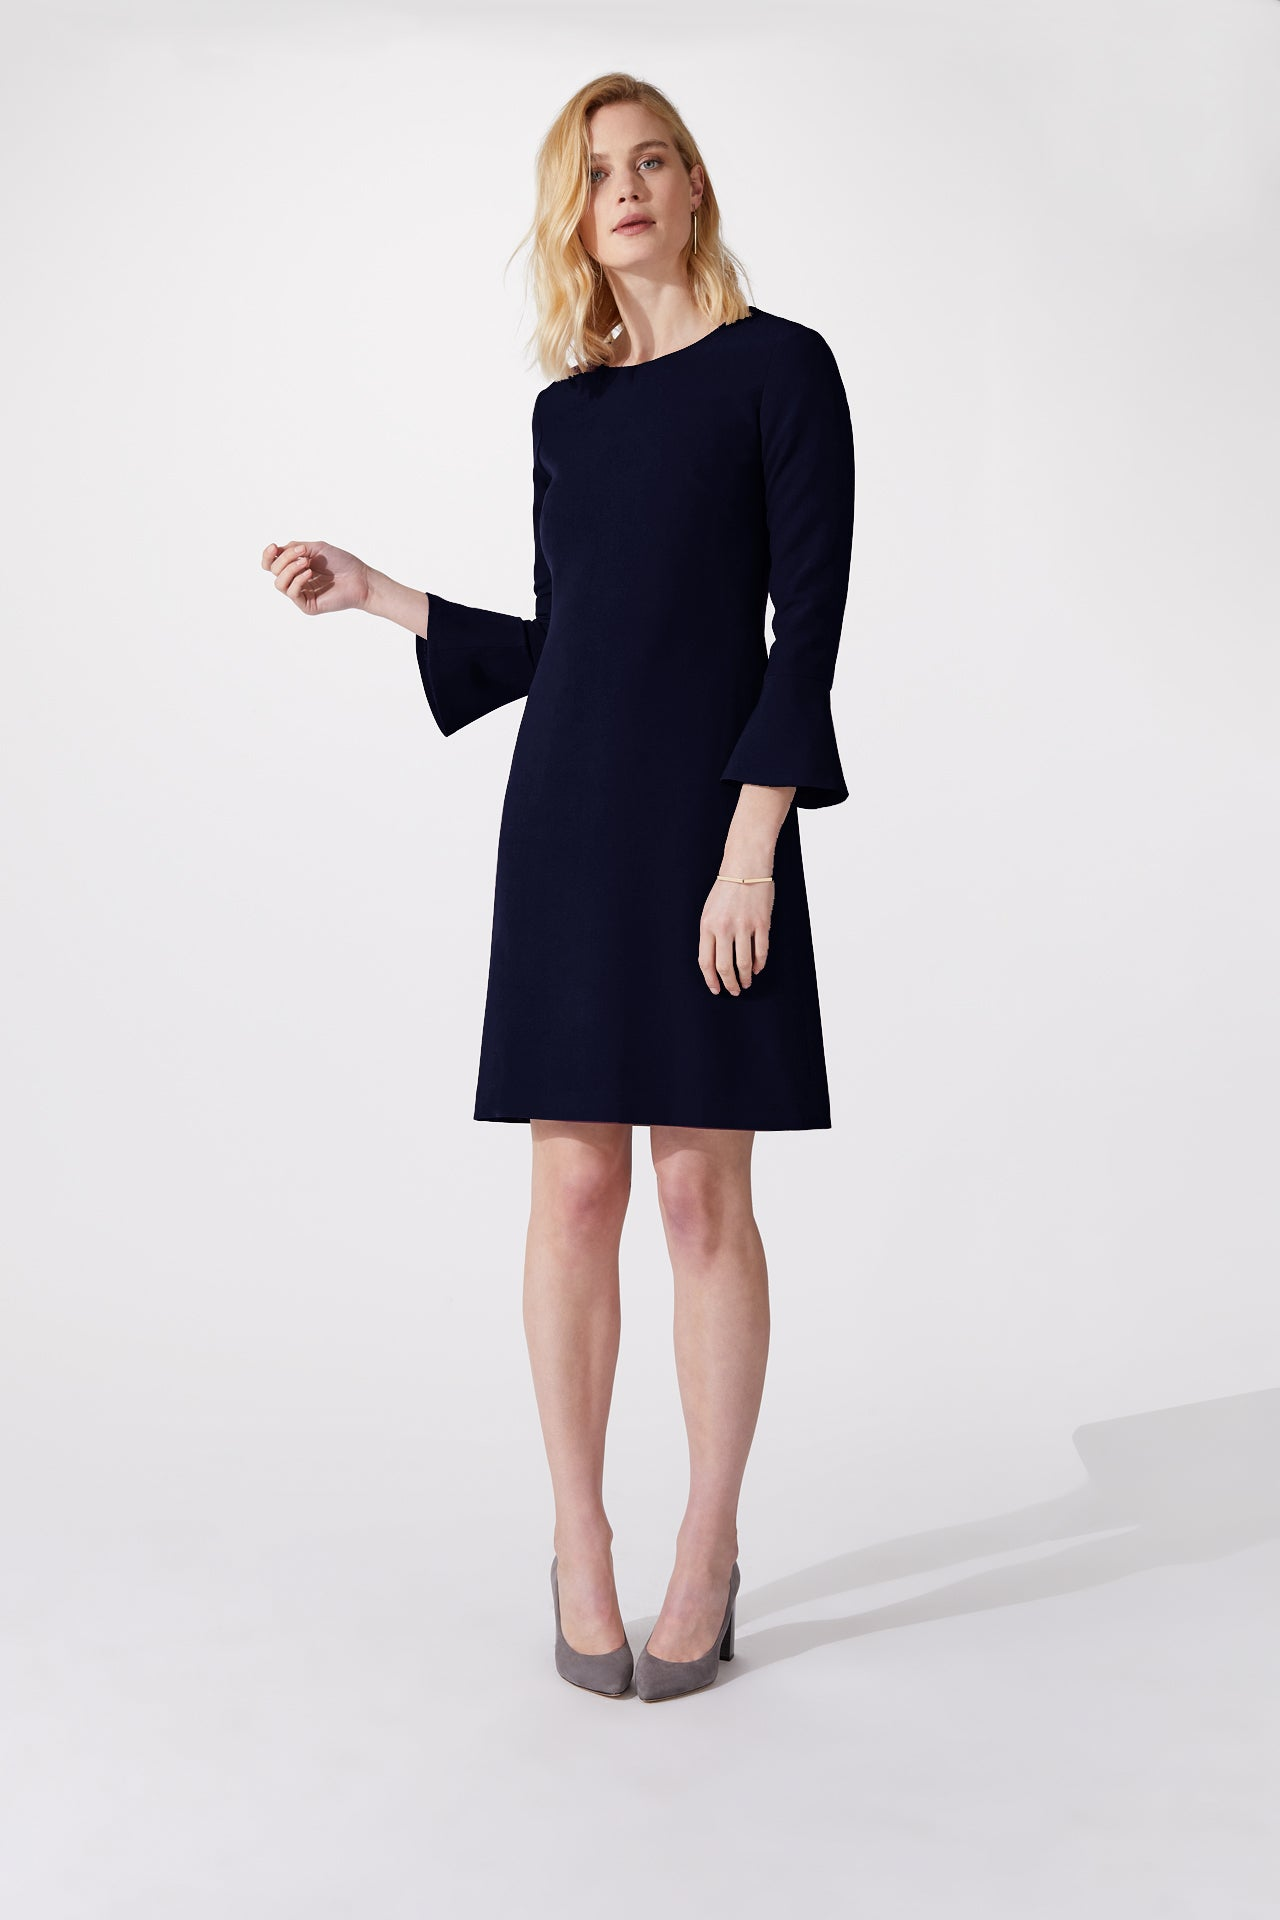 Windsor Navy Dress